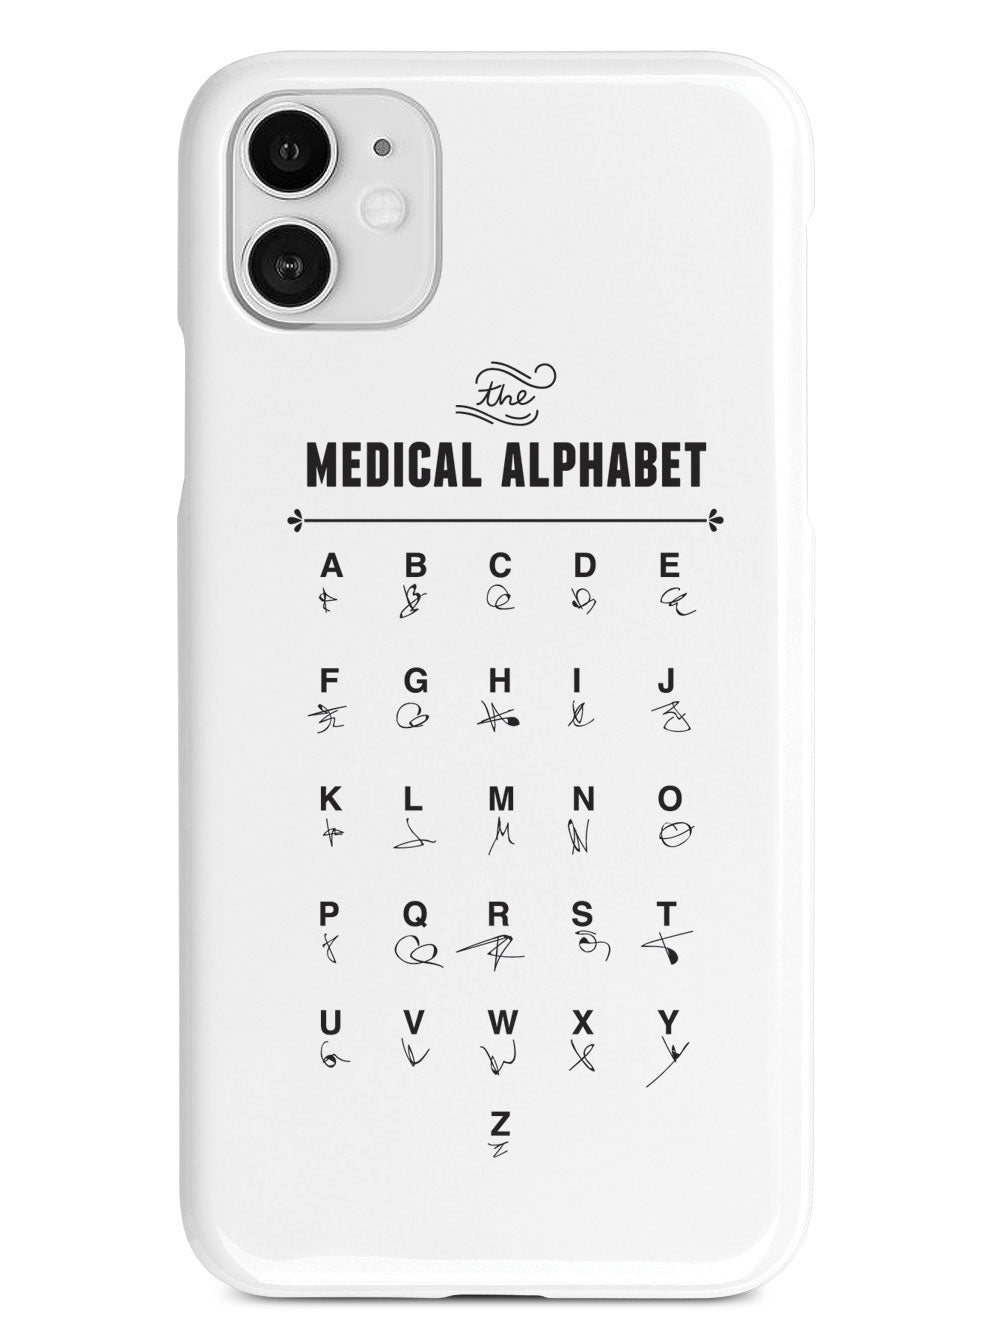 The Medical Alphabet Doctor's Case